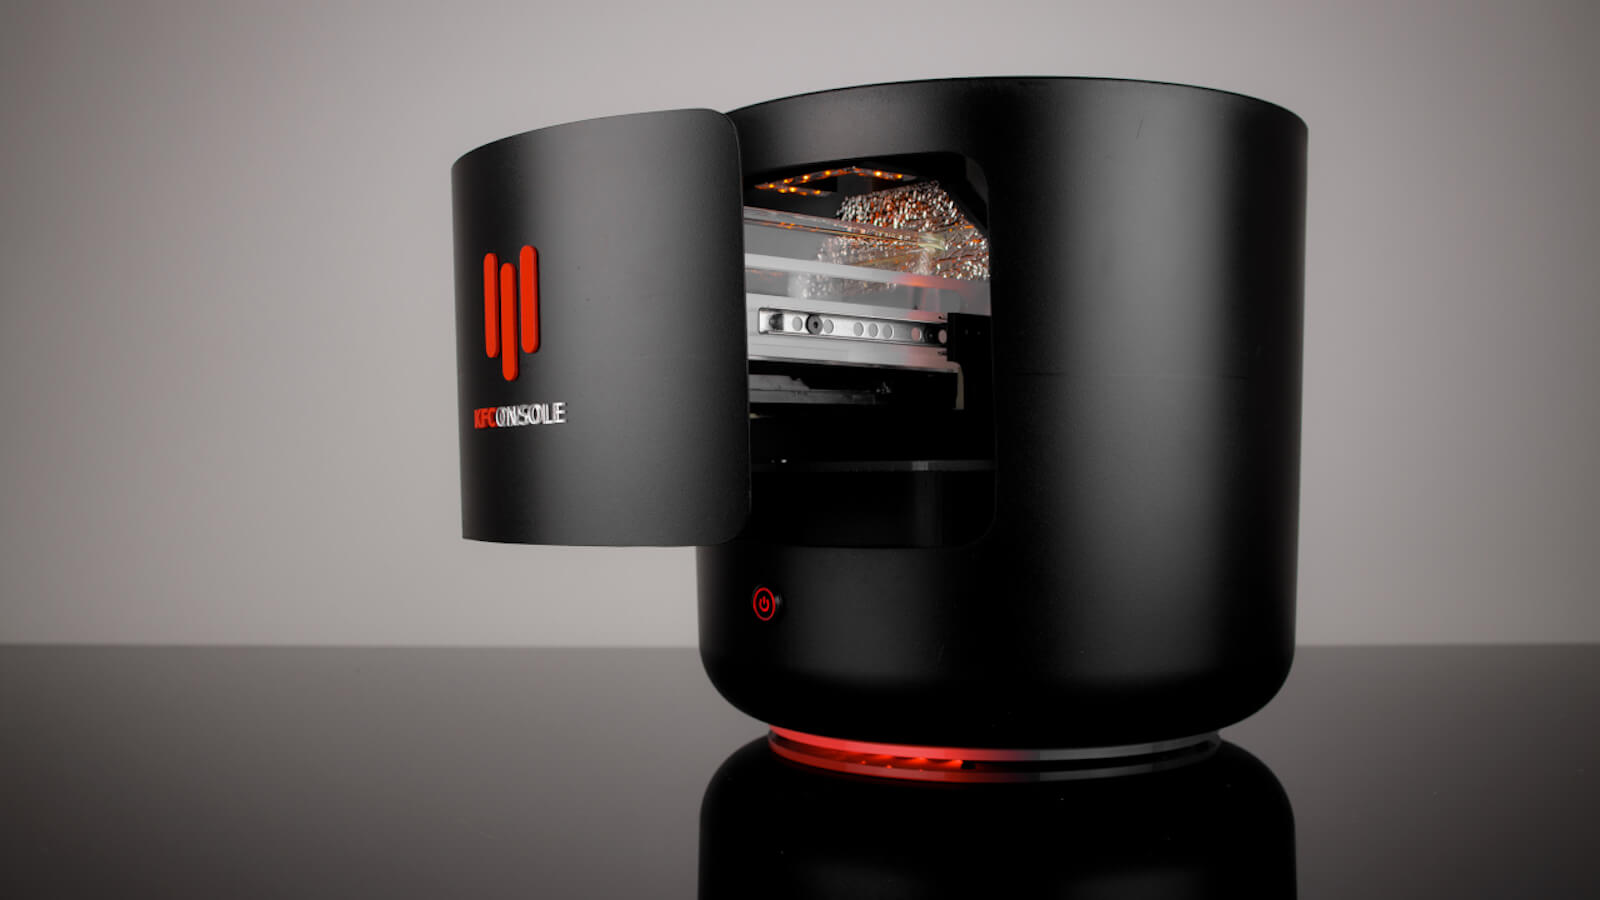 Cooler Master KFConsole bucket-shaped gaming PC also warms chicken